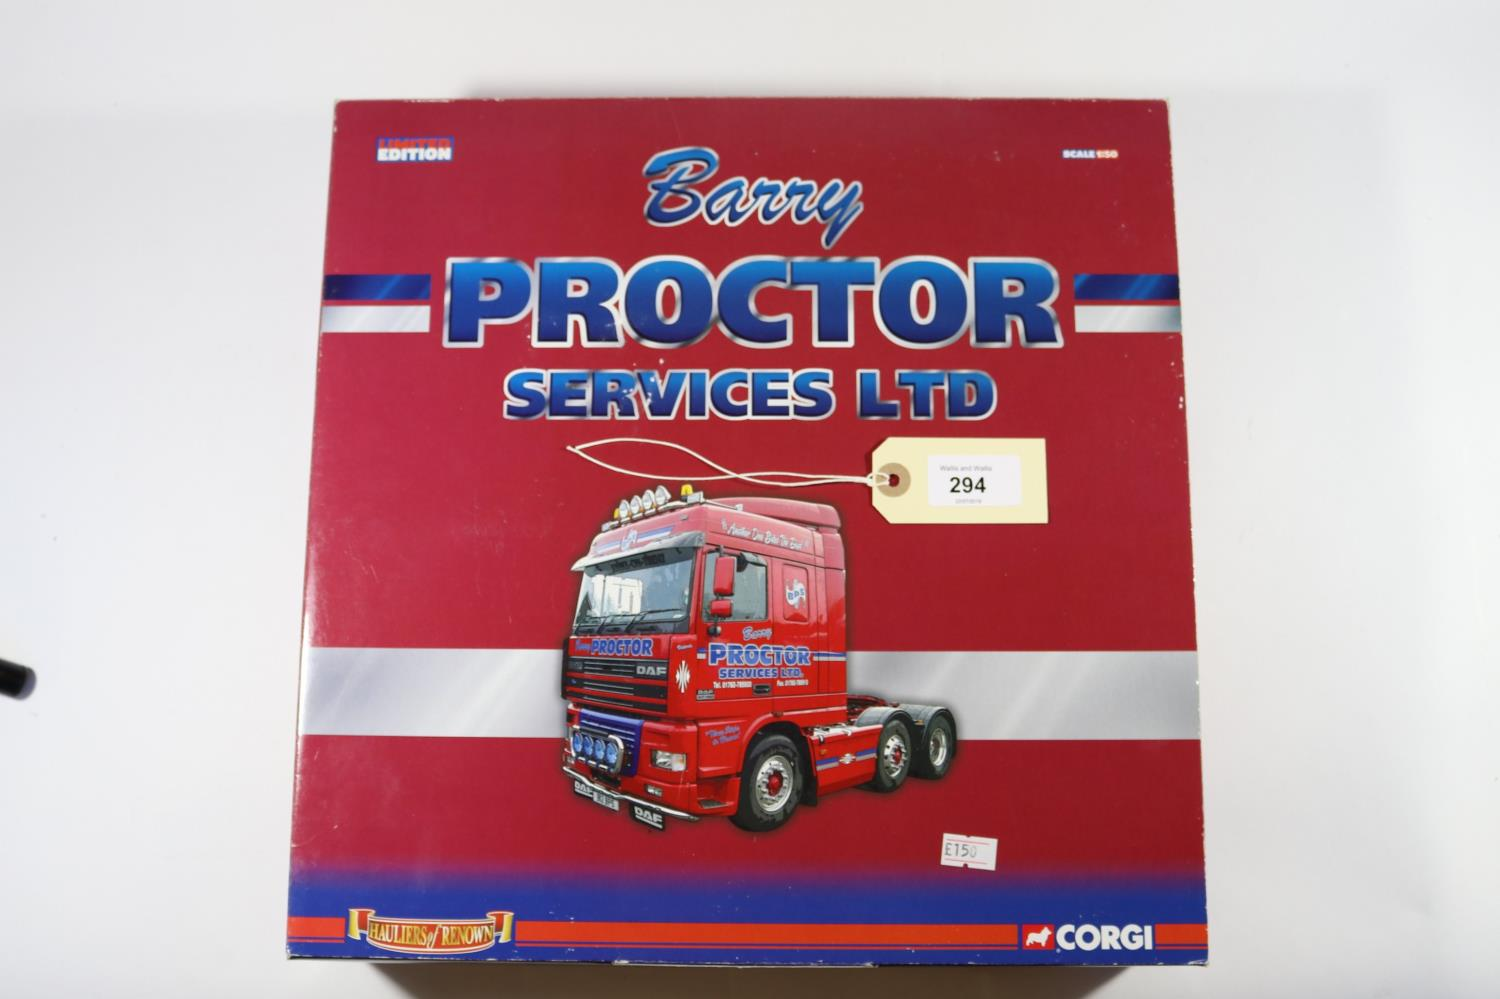 Lot 294 - A Corgi Limited Edition 'Hauliers of Renown' series boxed Set. 'Barry Proctor Services Ltd'. (